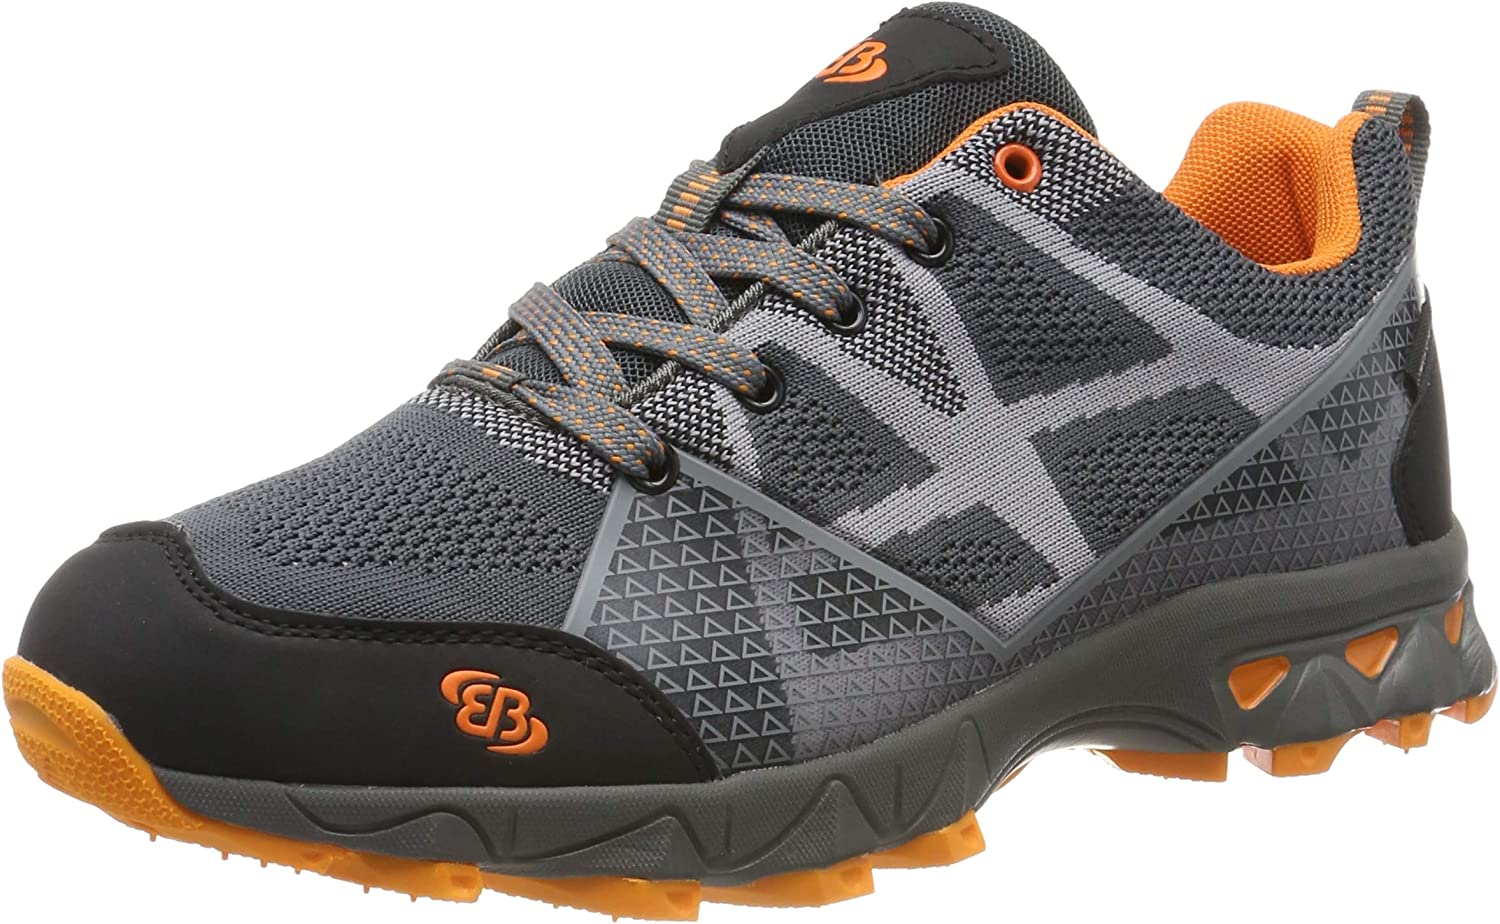 Bruetting Unisex Adults' Canton Low Rise Hiking shoes